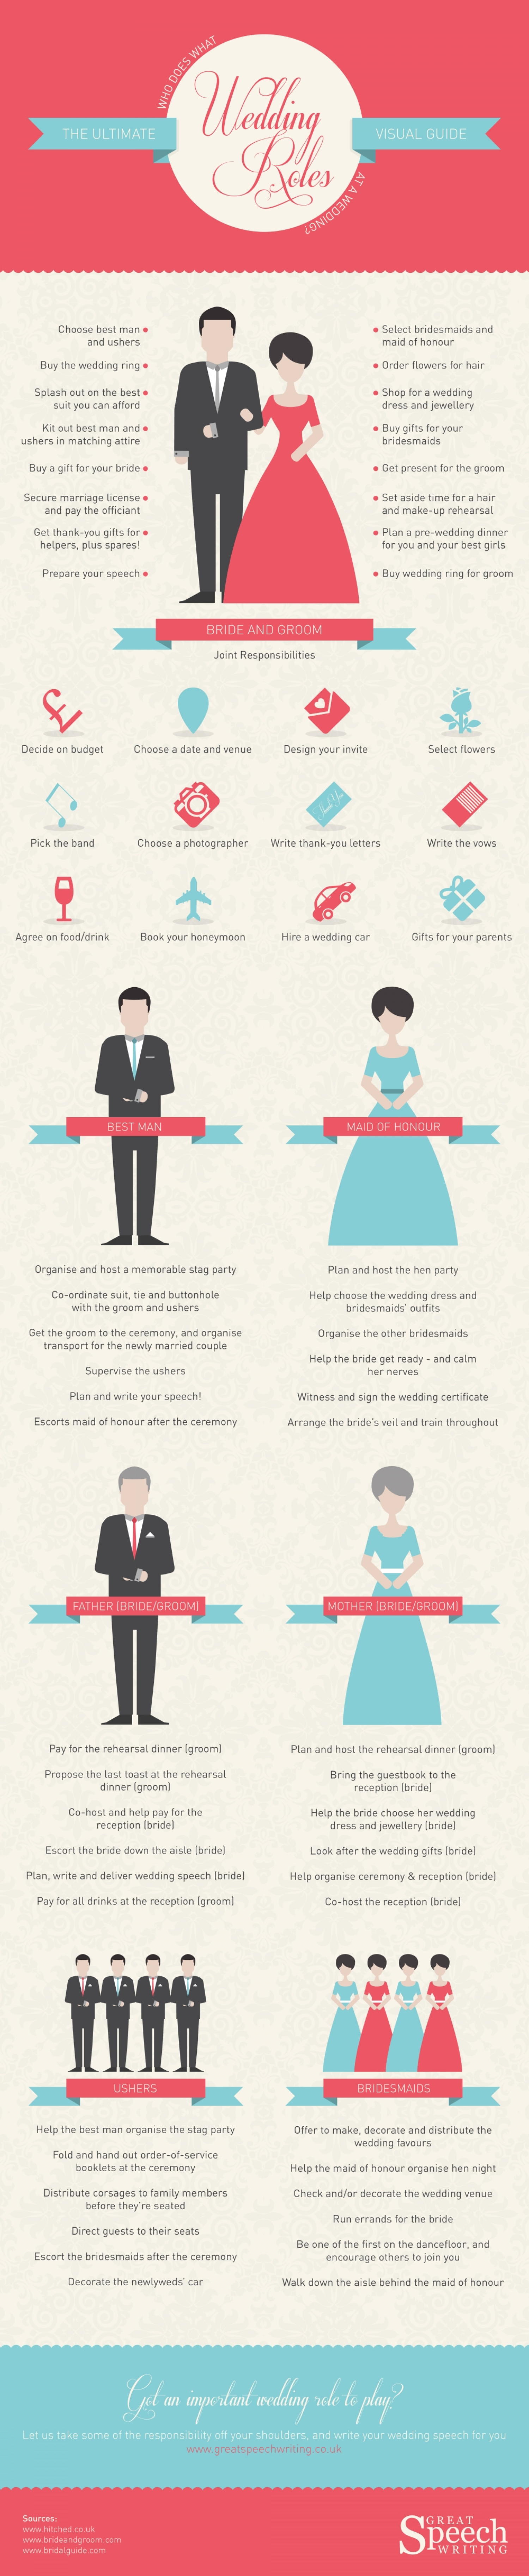 Wedding Roles: Who Does What at a Wedding? Infographic